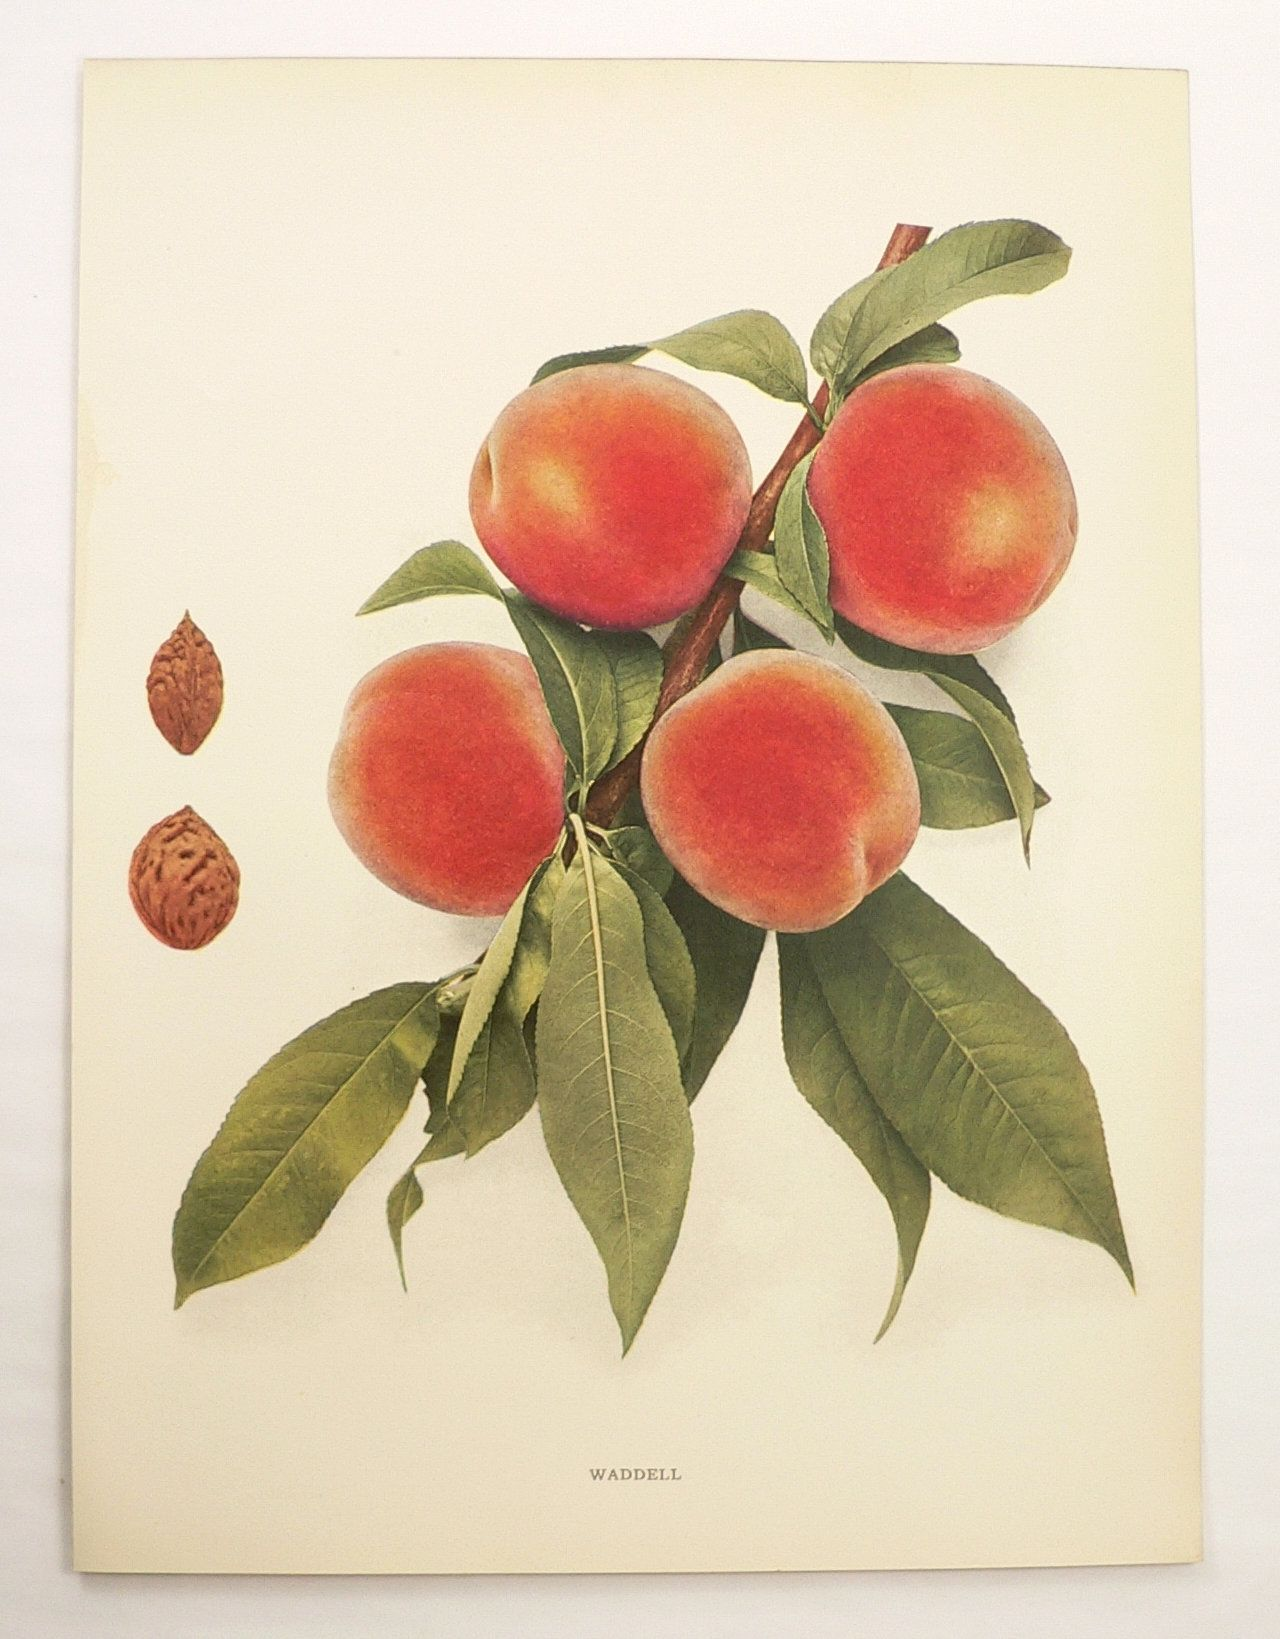 Vintage Peach Print 1917 Old Color Print Of Peaches Etsy Fruit Wall Art Peach Art Colorful Prints